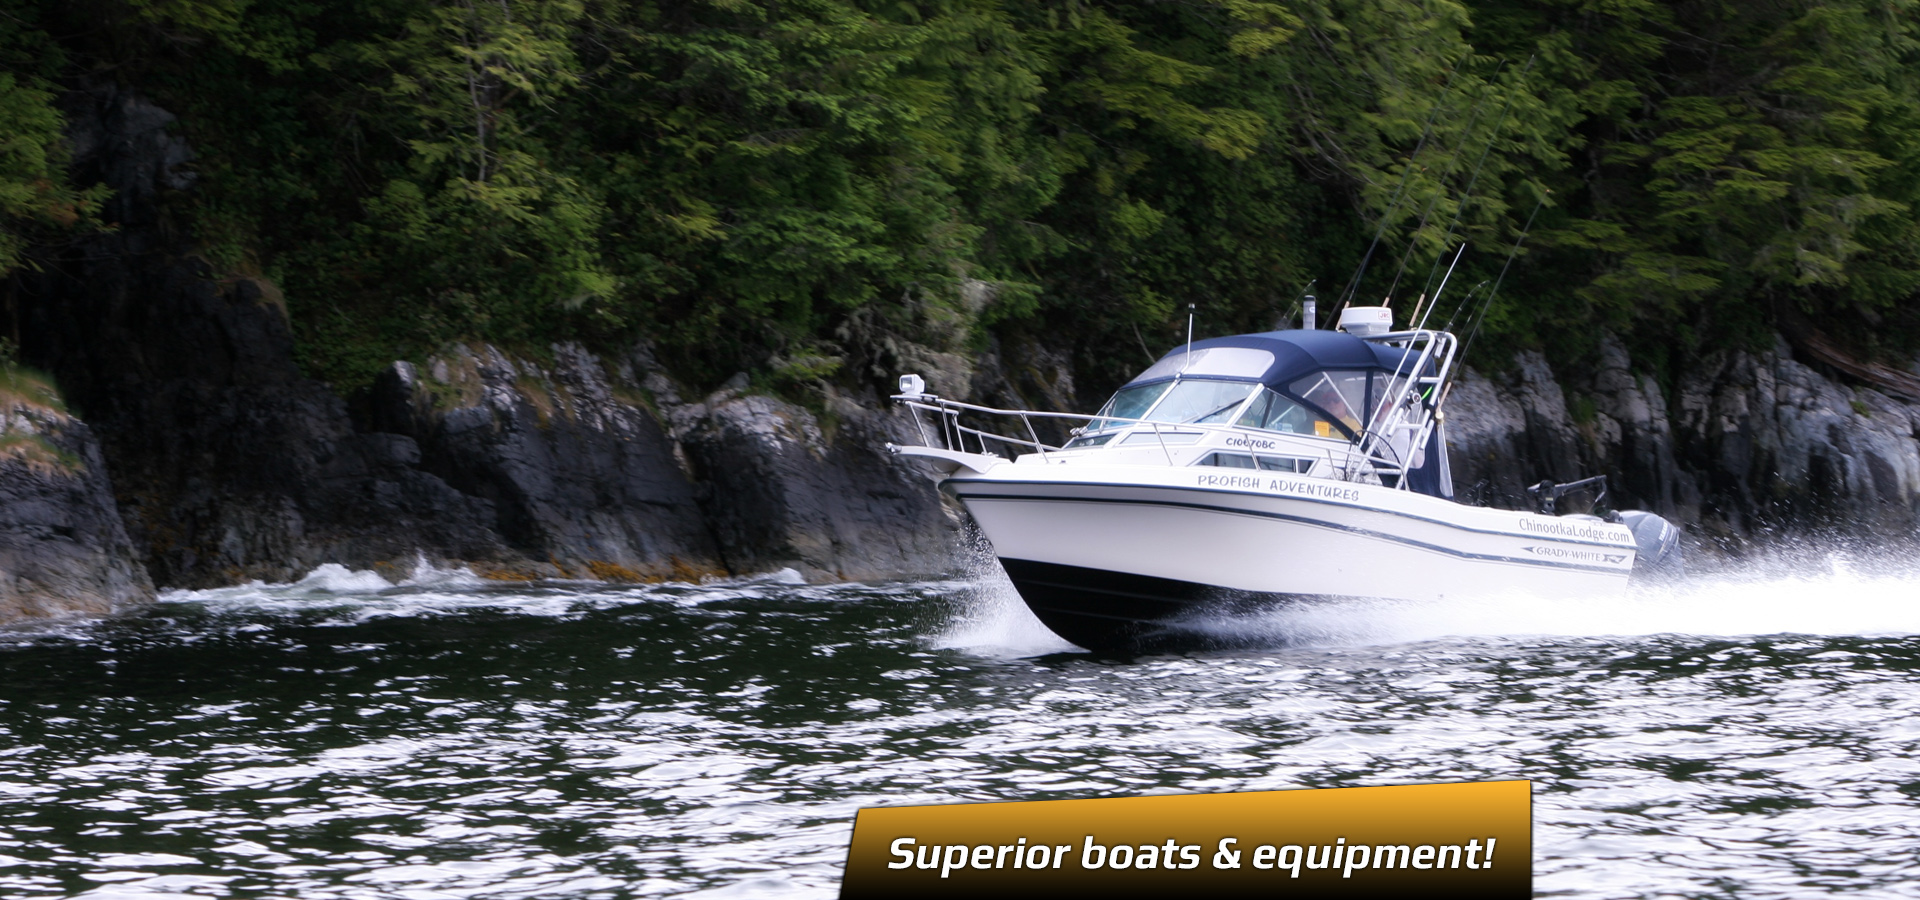 profish superior boats